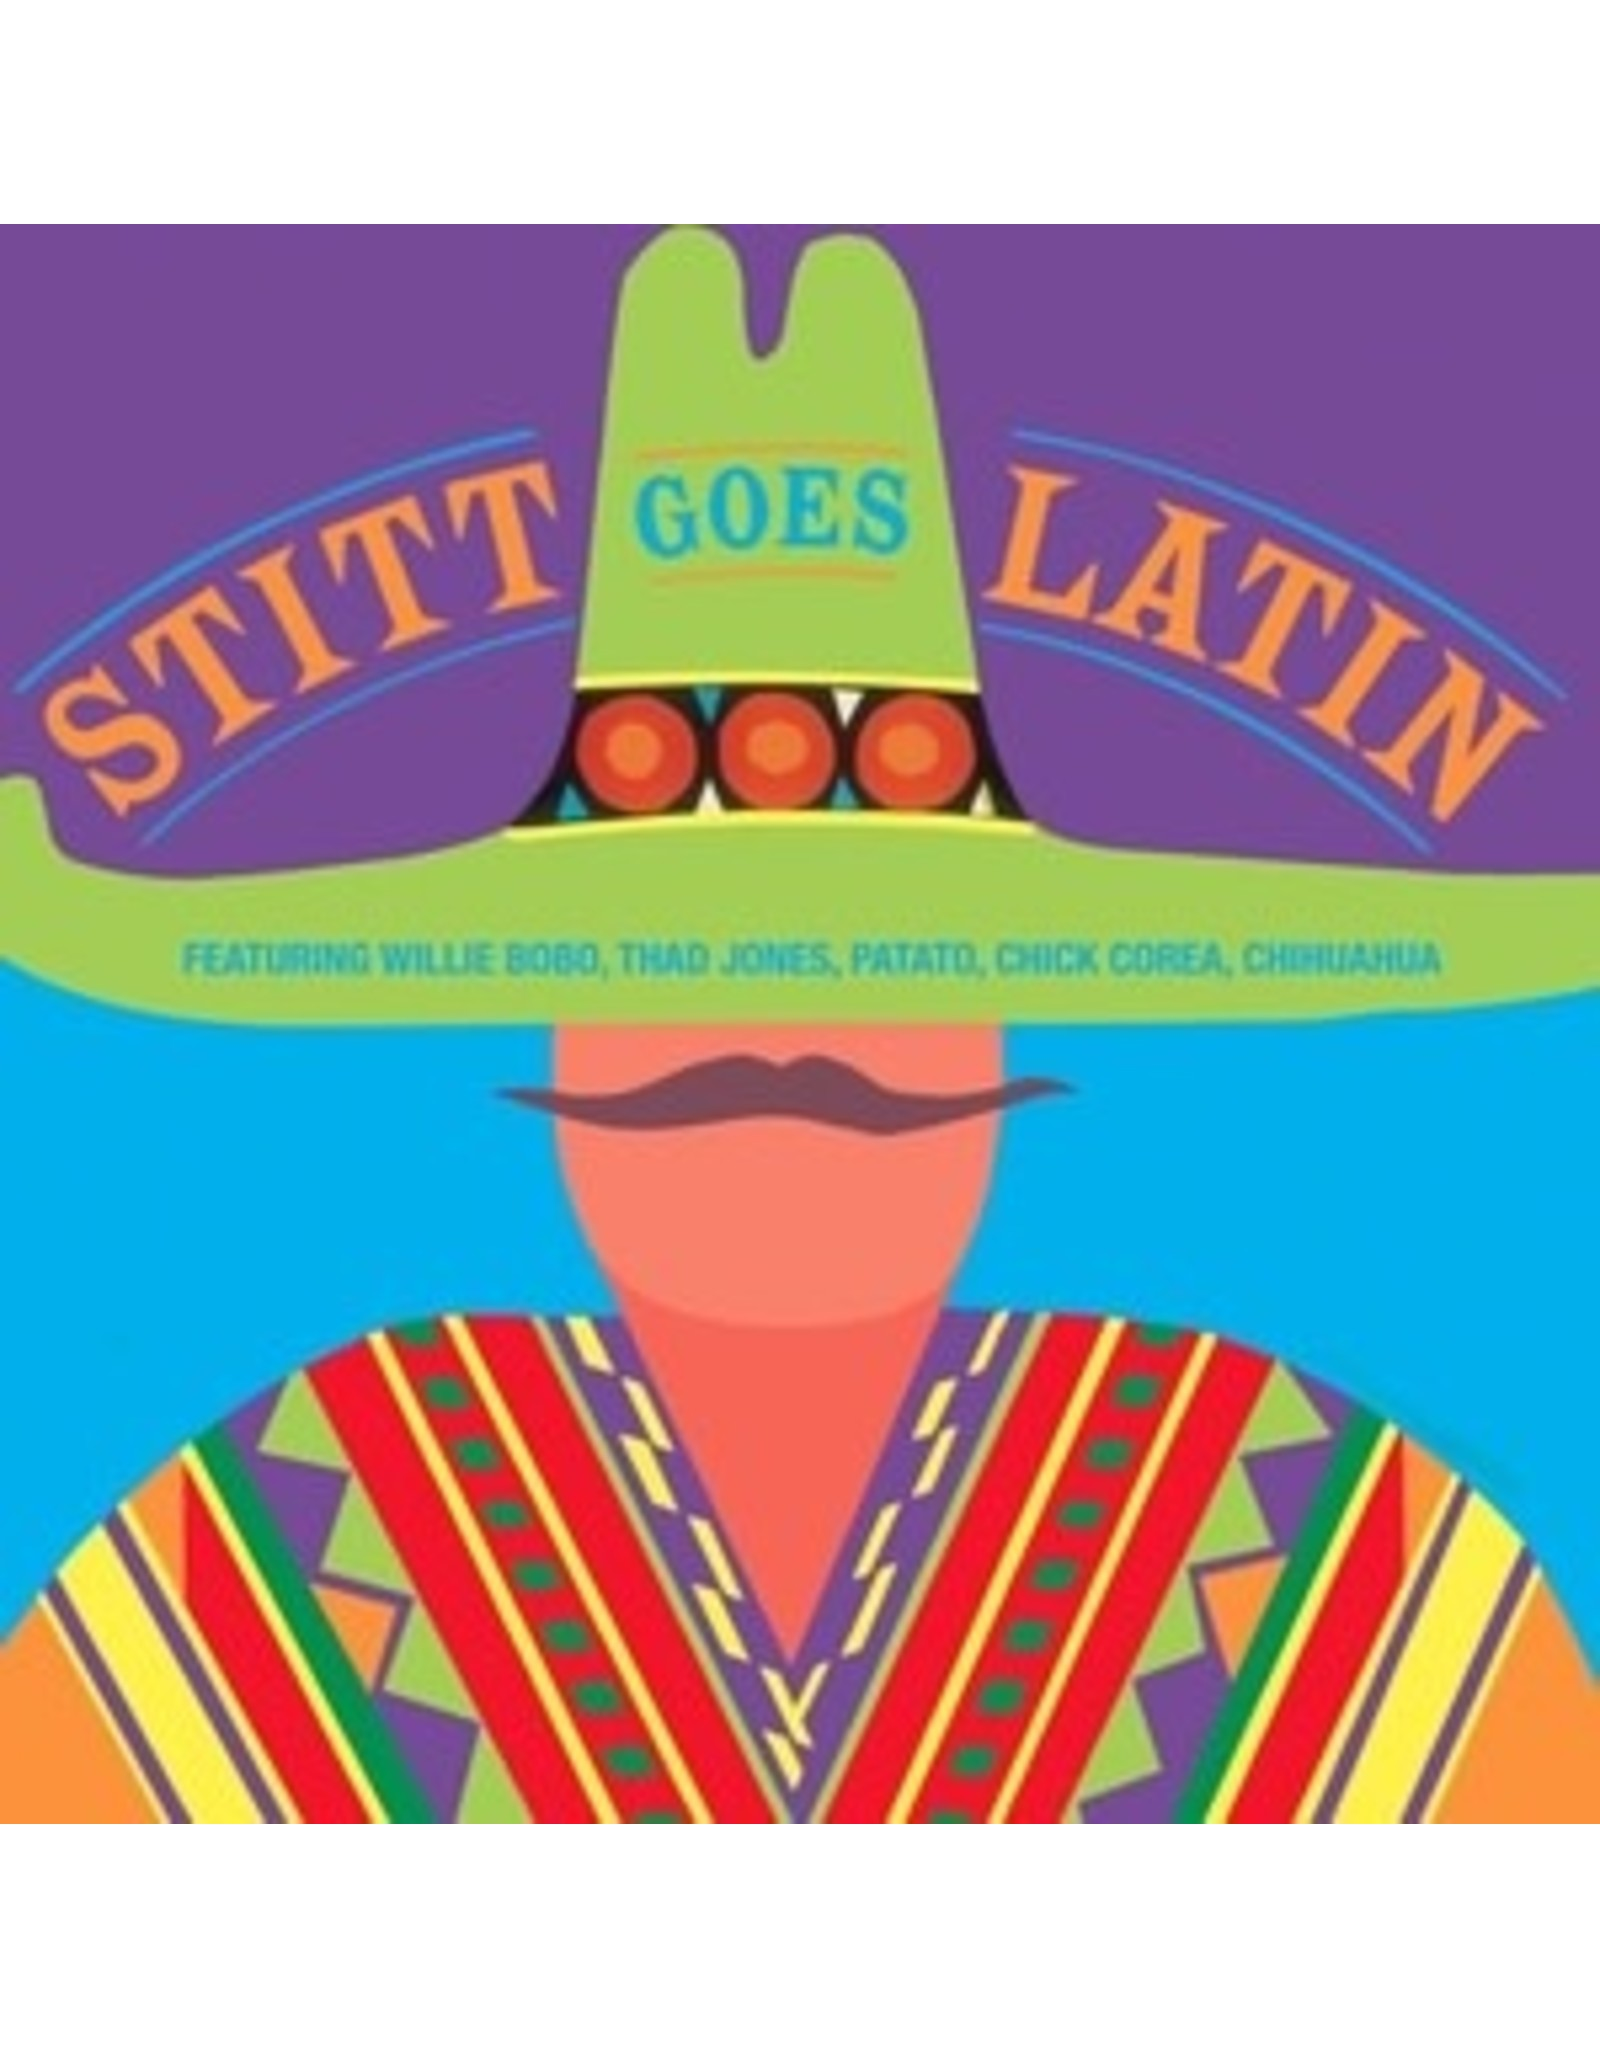 New Vinyl Sonny Stitt - Still Goes Latin LP